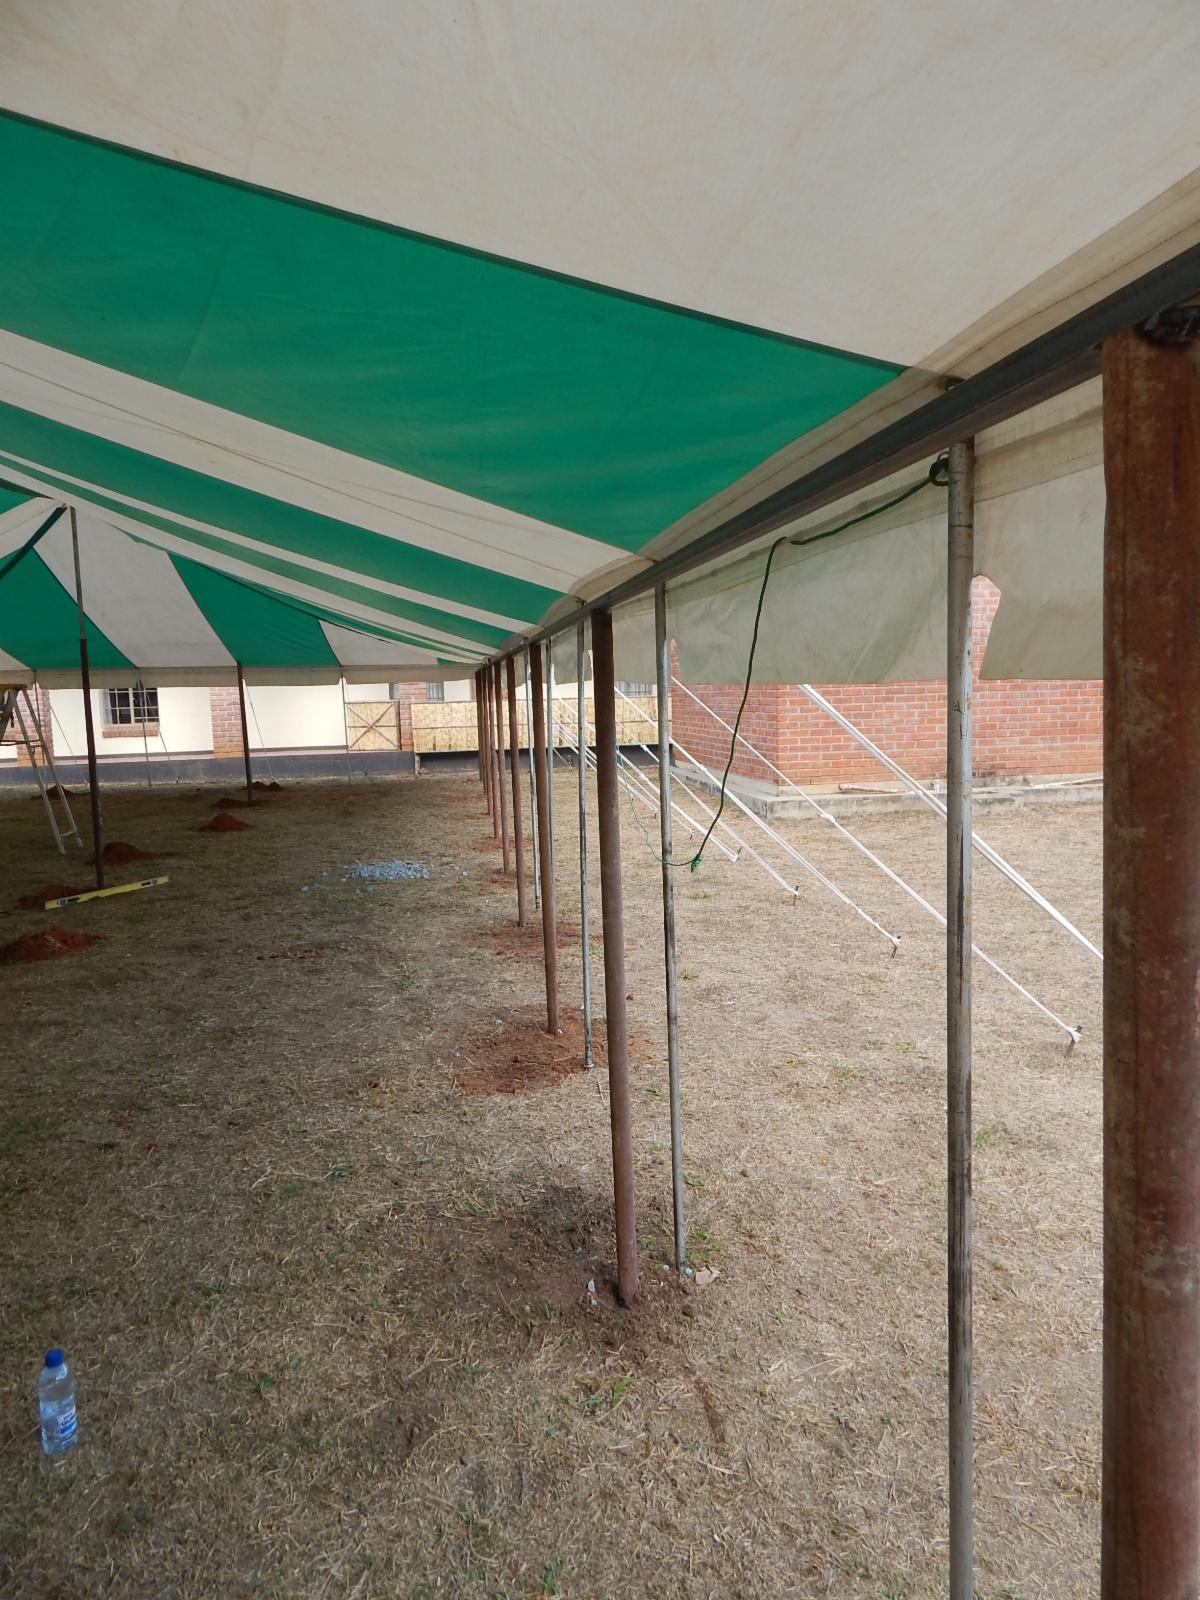 Tent infirmary